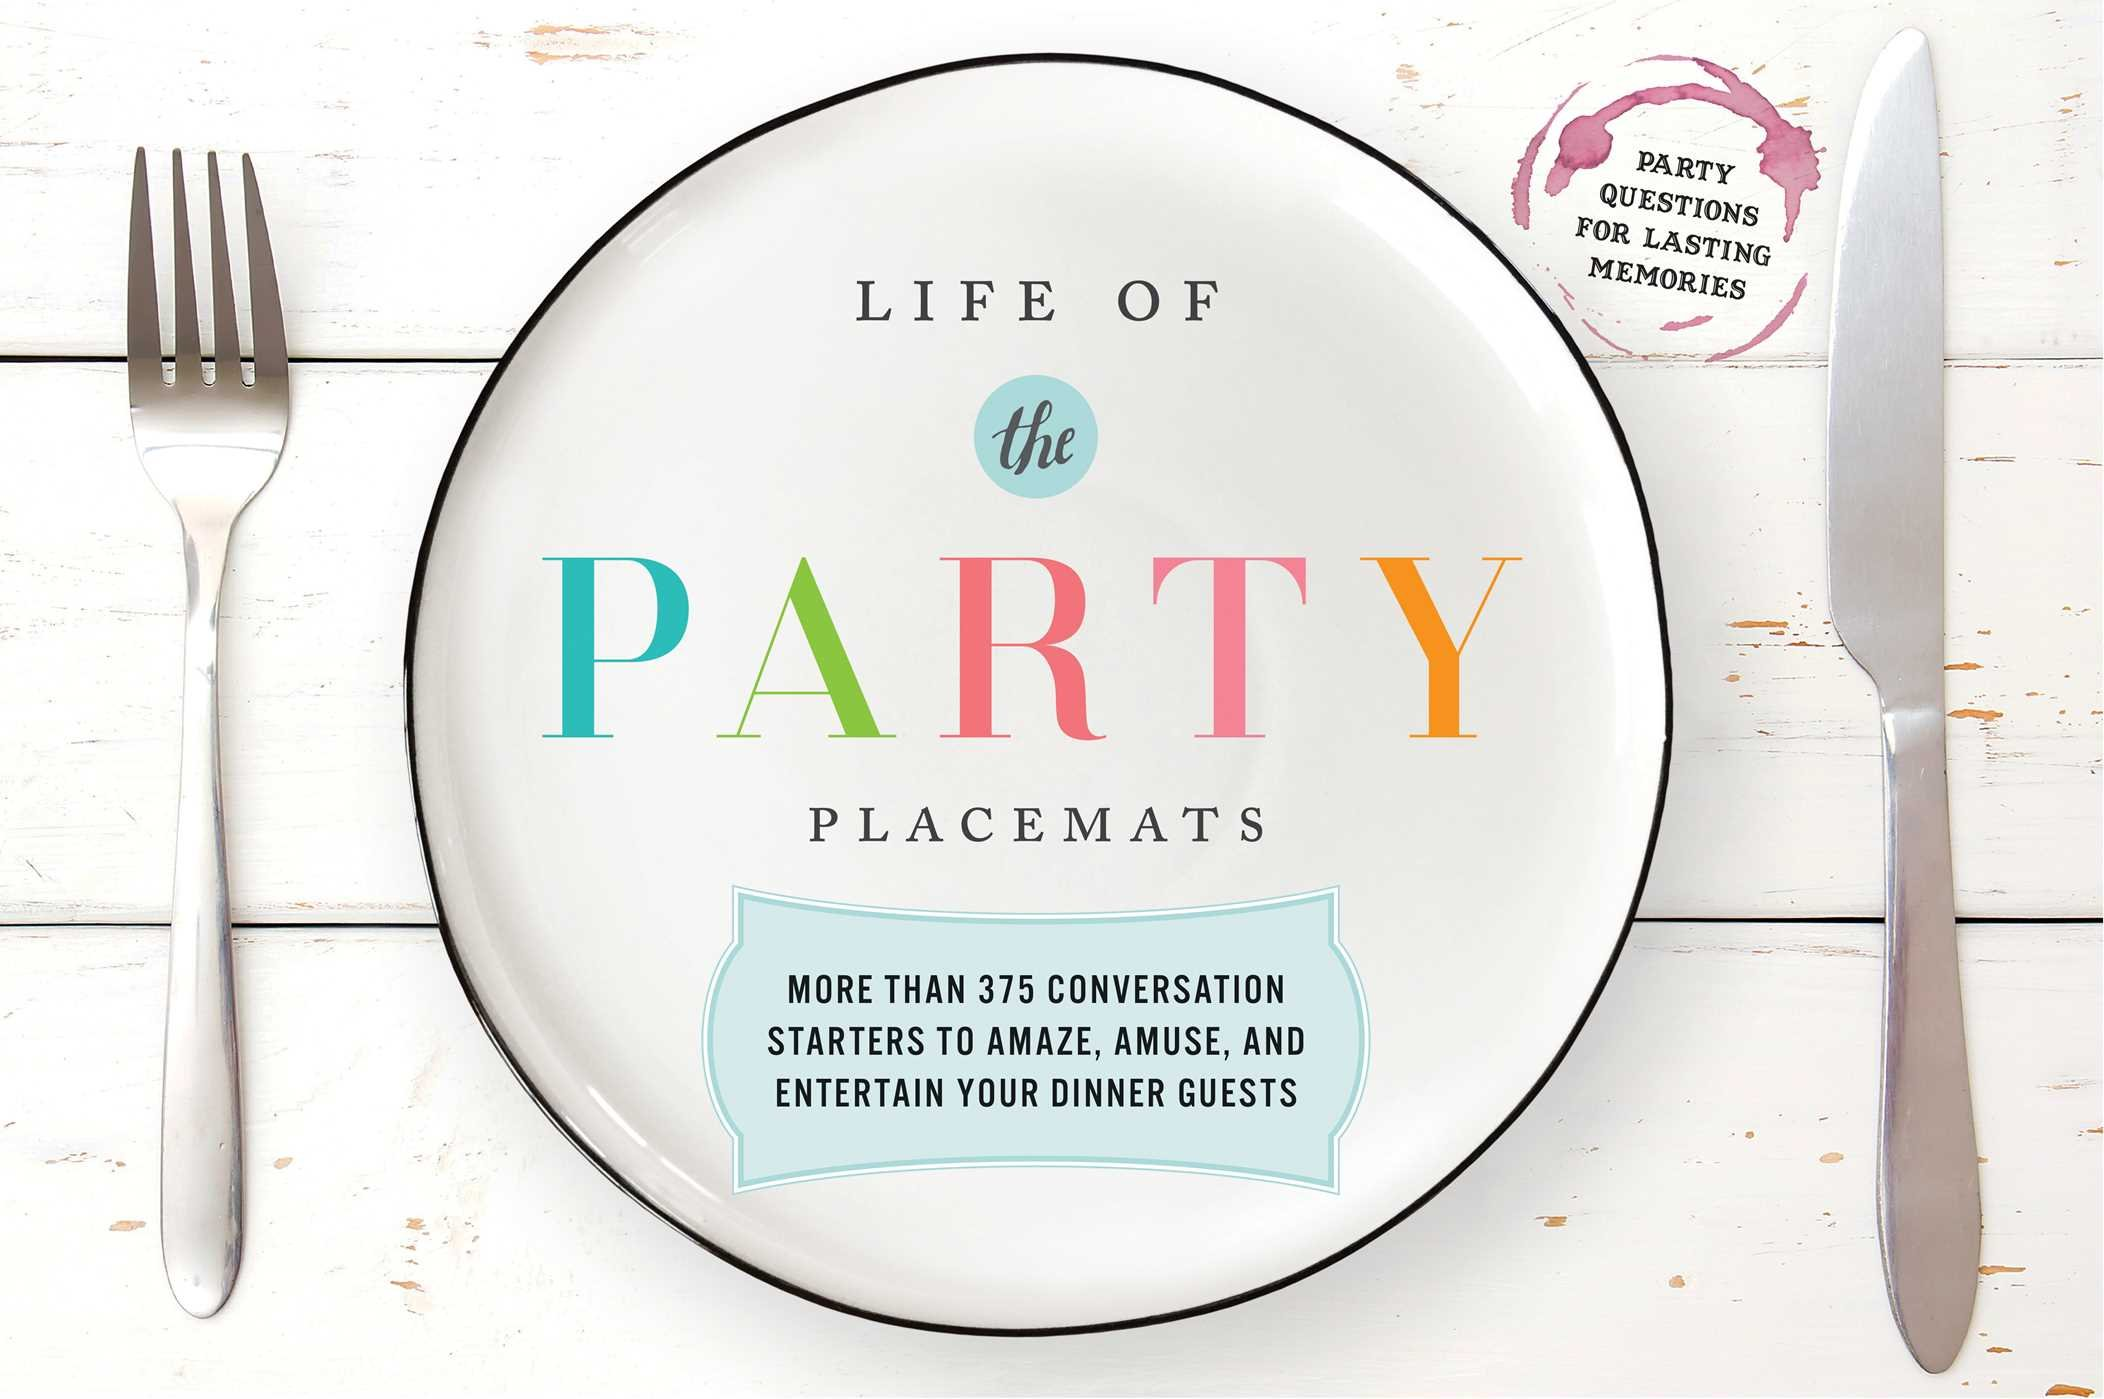 Life of the Party Placemats: More than 375 conversation starters to amaze, amuse, and entertain your dinner guests